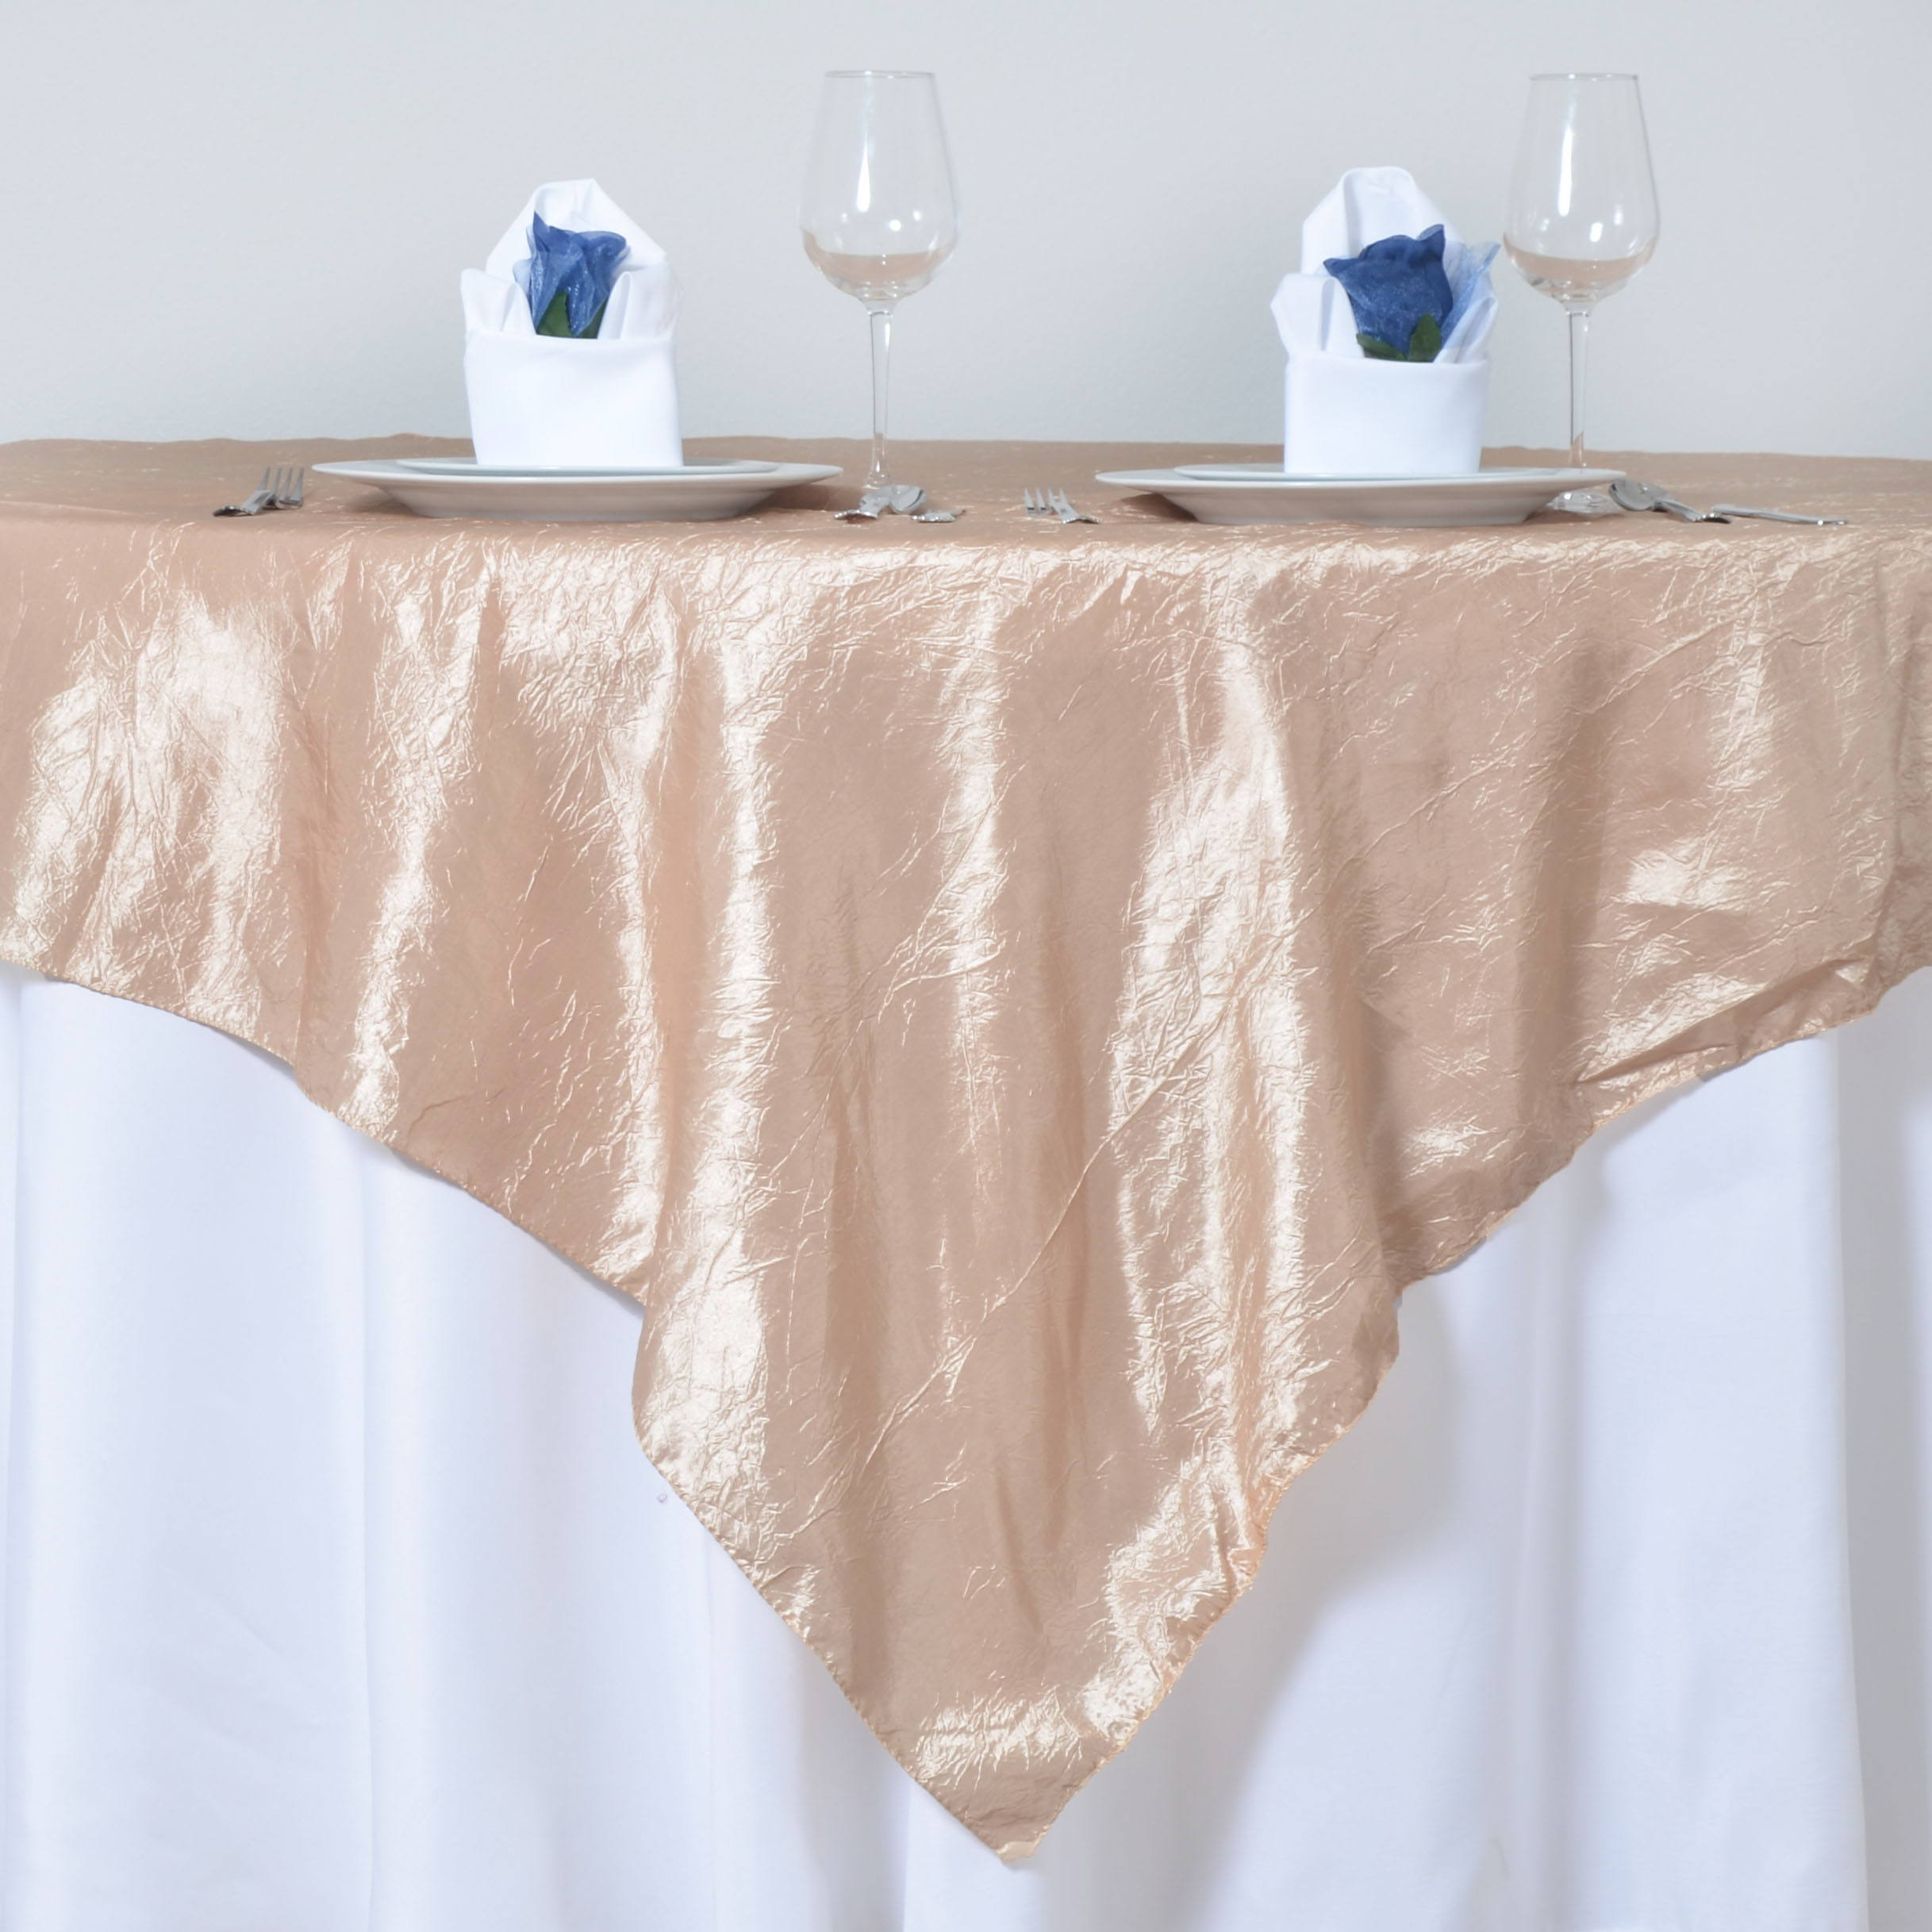 ... -Taffeta-Crinkle-Overlays-Wedding-Table-Top-Decorations-for-Reception